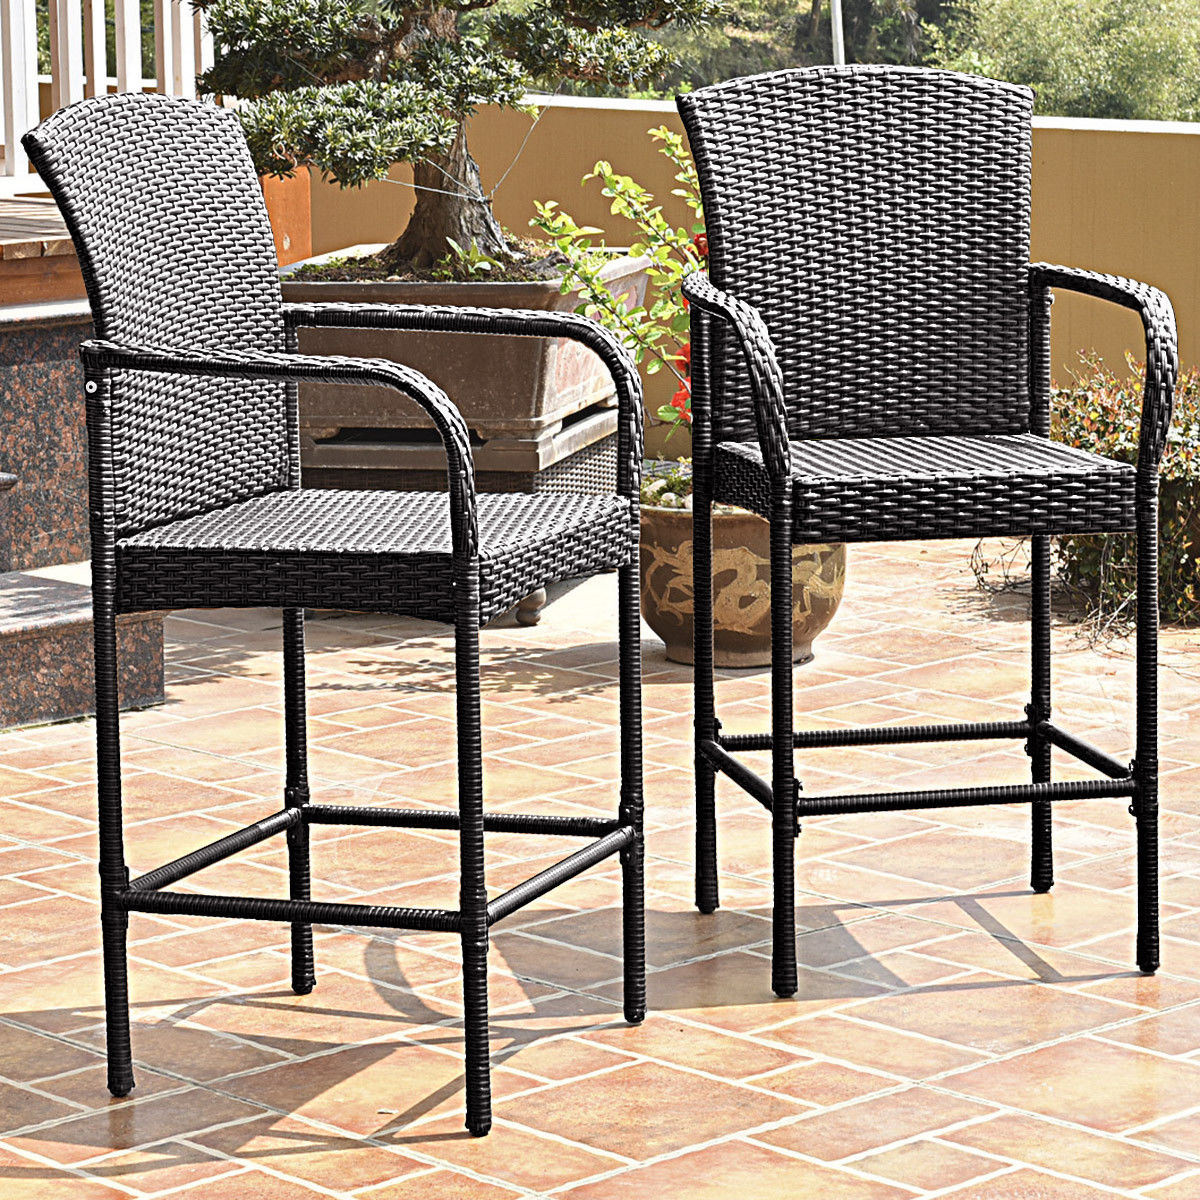 2pcs Patio Rattan Bar Stools High Counter Dining Chair W Armrests